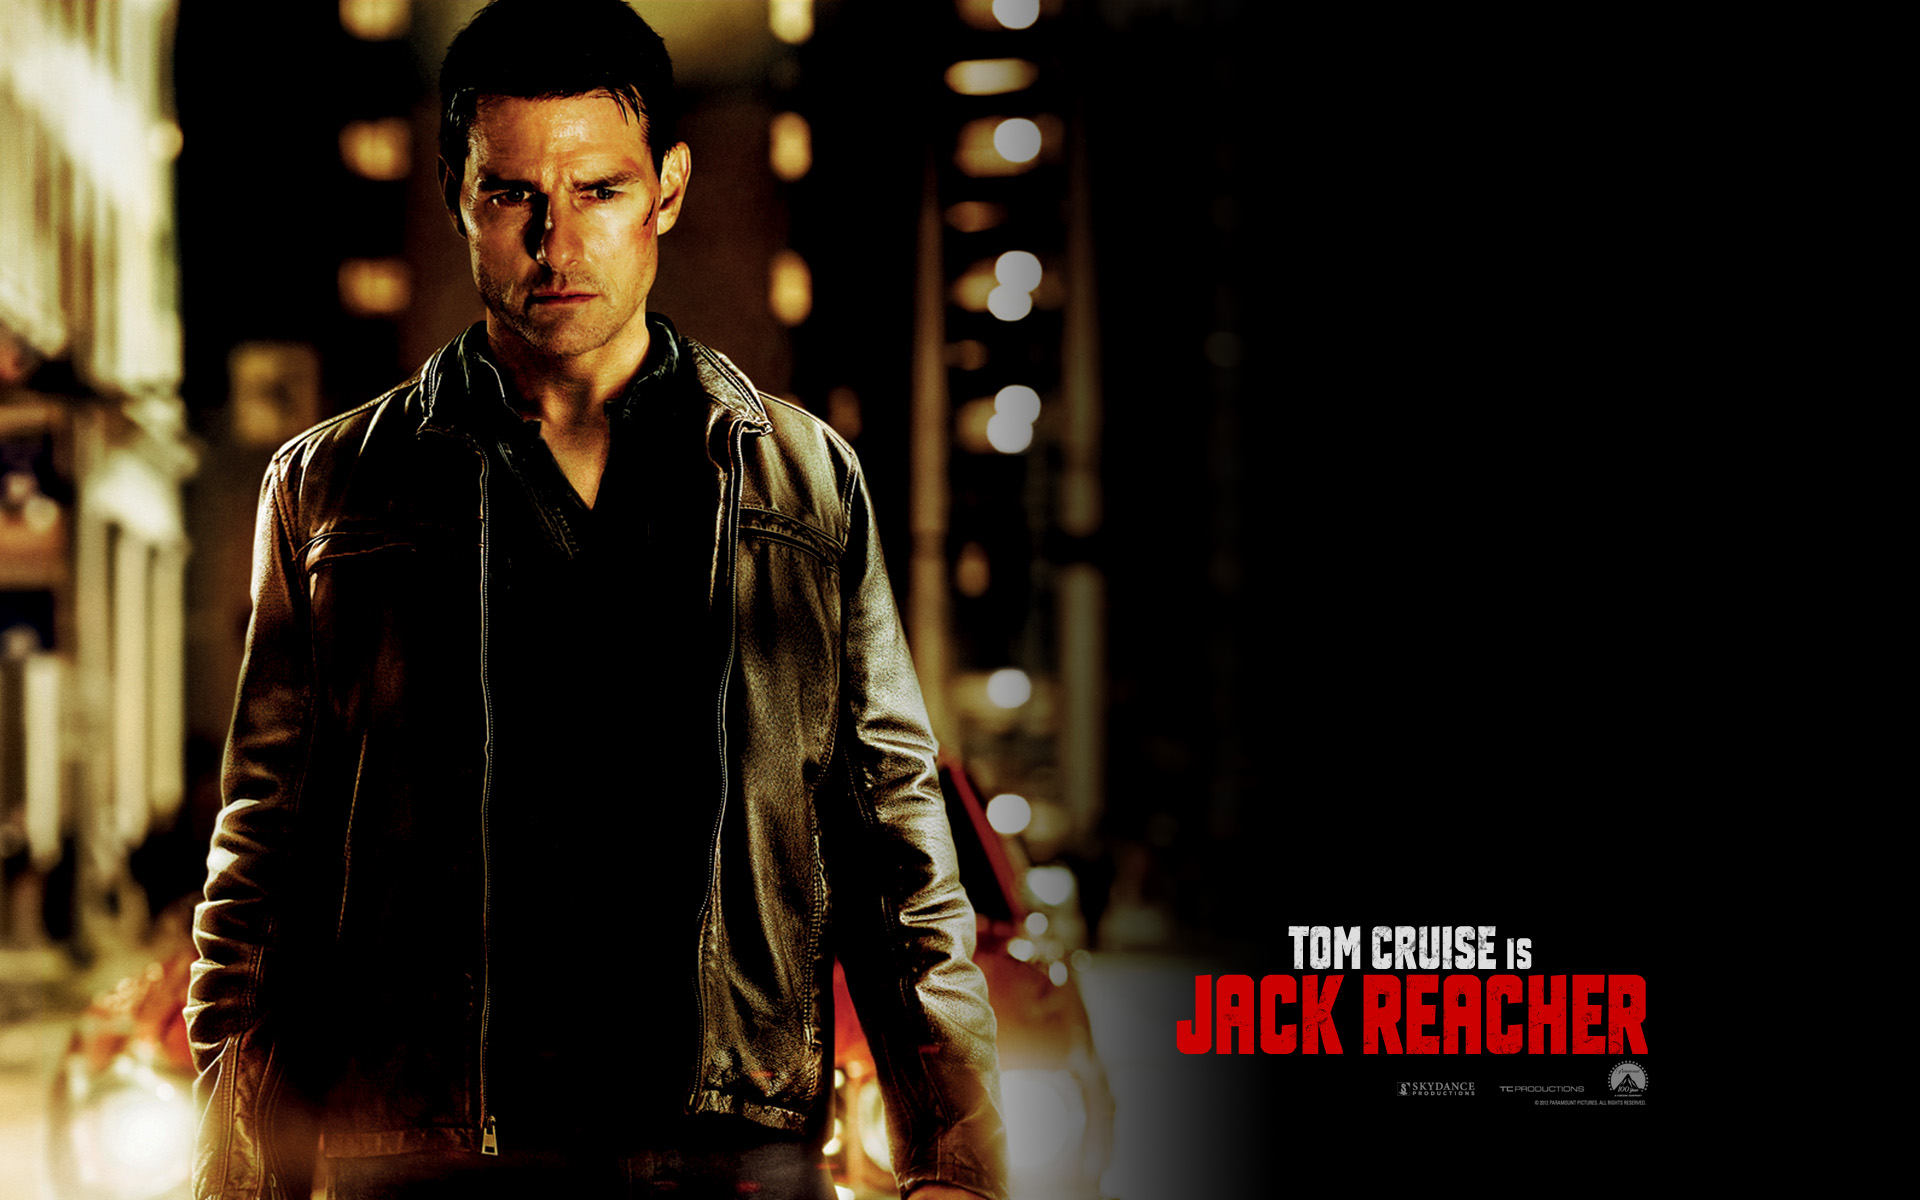 Jack Reacher HD Wallpaper Background Image 1920x1200 ID 1920x1200